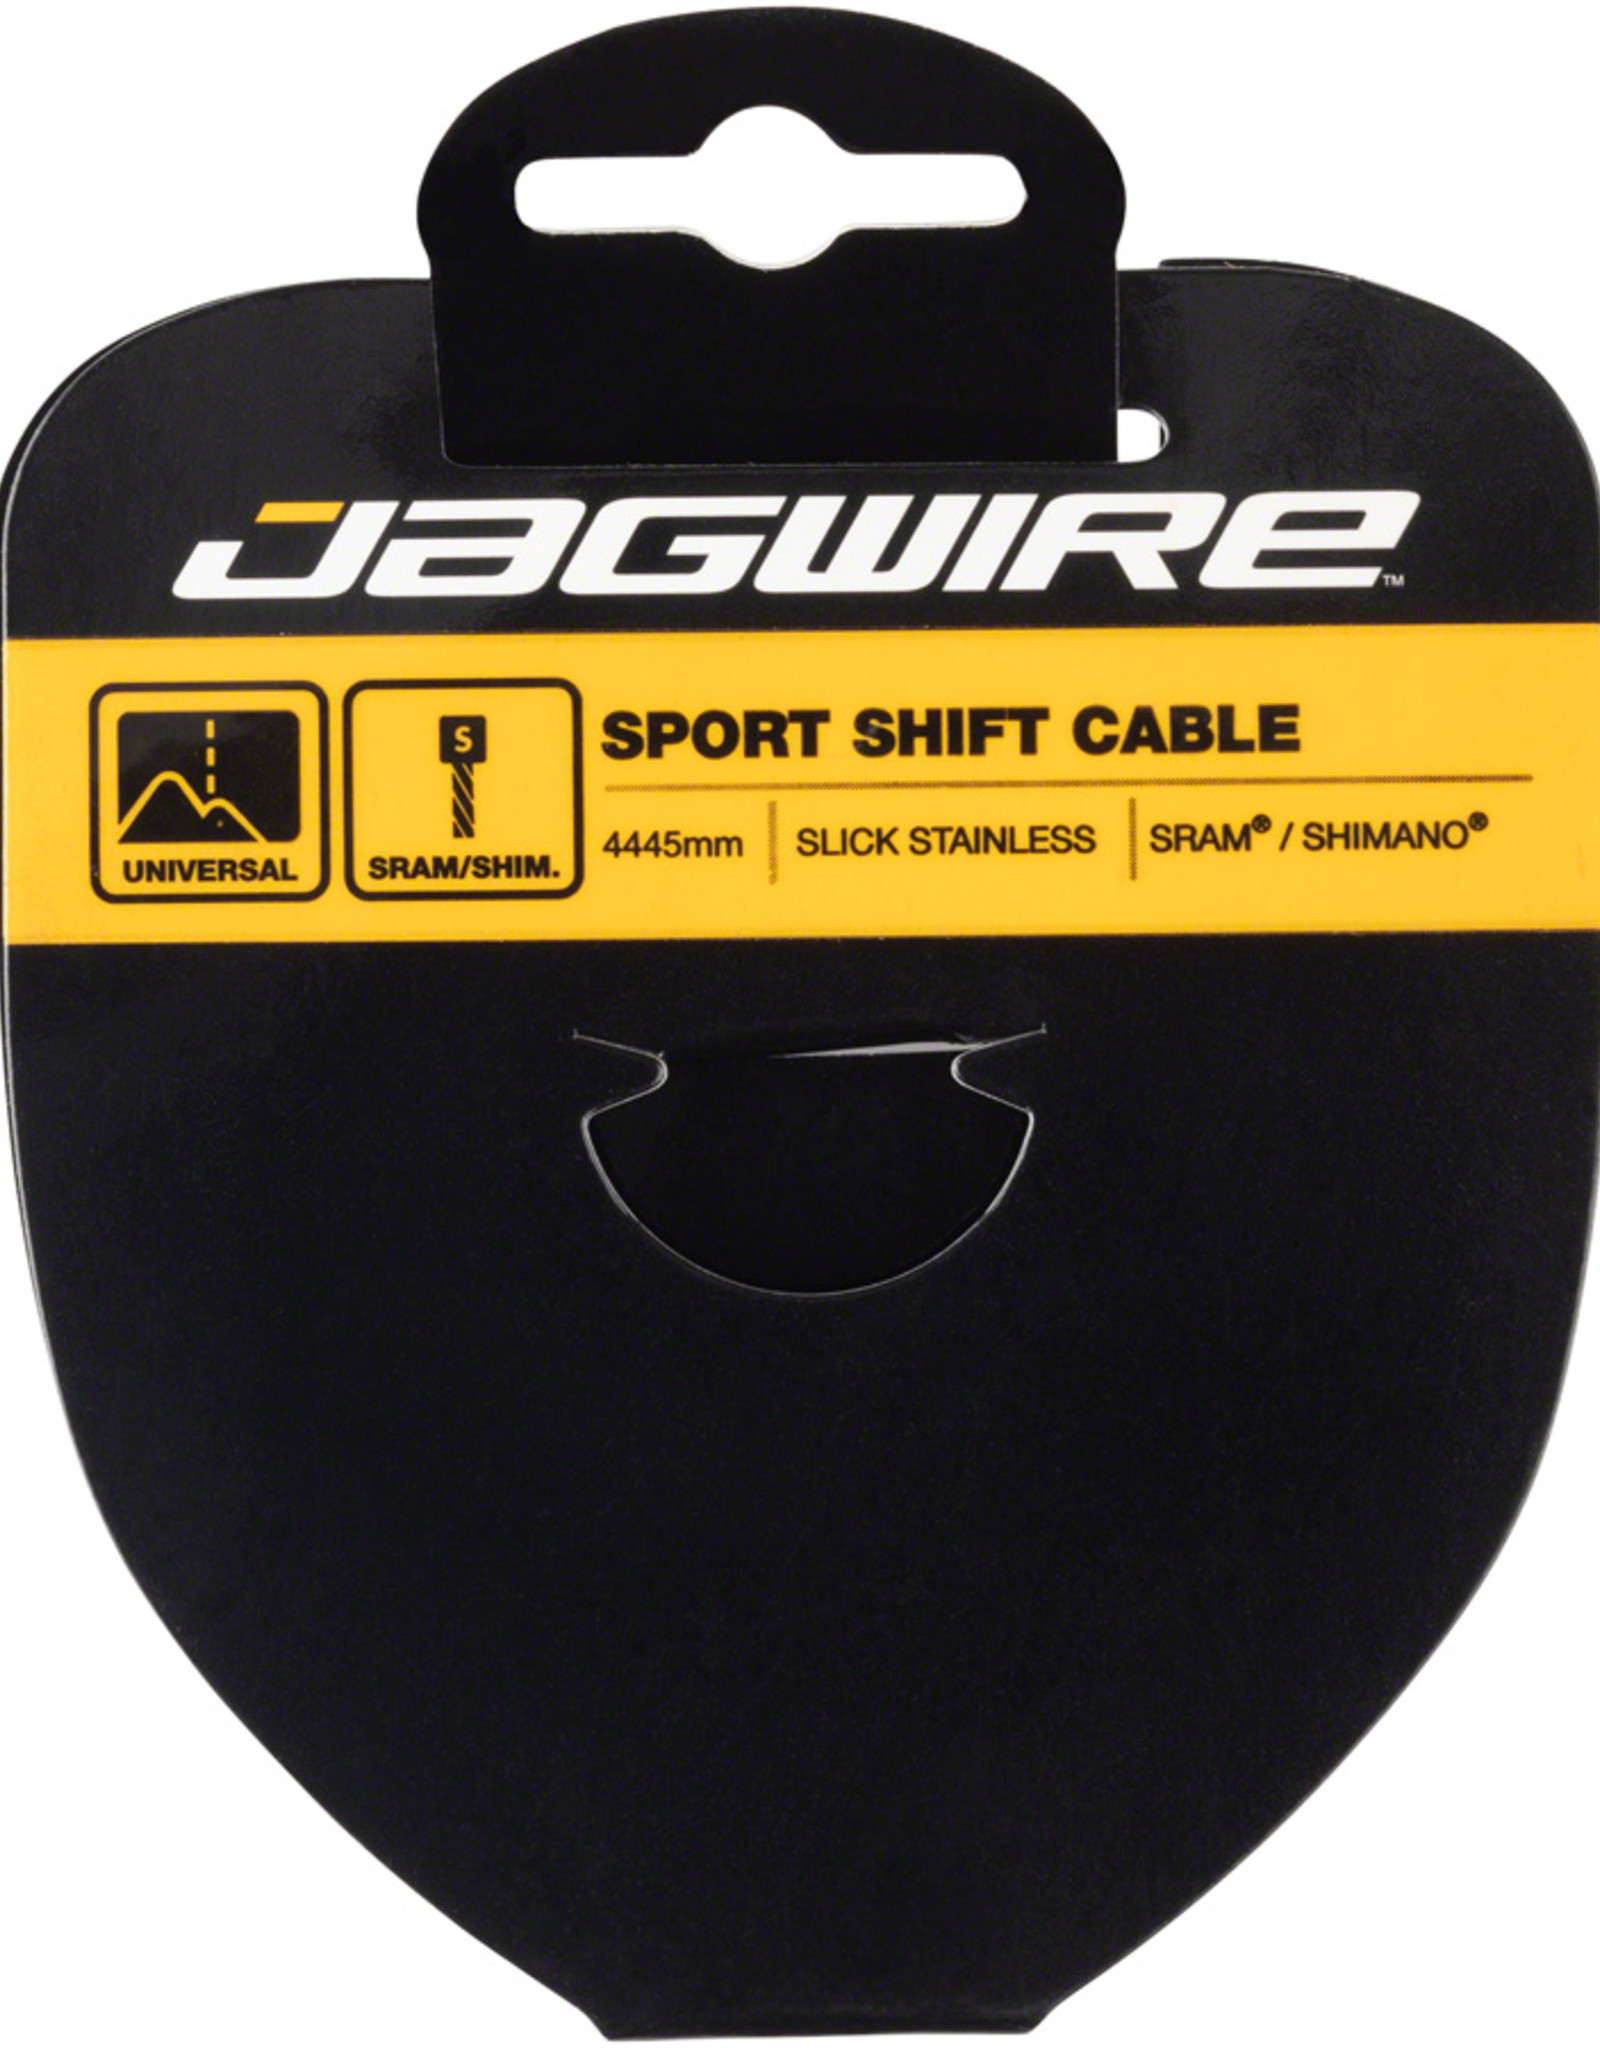 Jagwire Sport Derailleur Cable Slick Stainless 1.1x4445mm SRAM/Shimano Tandem